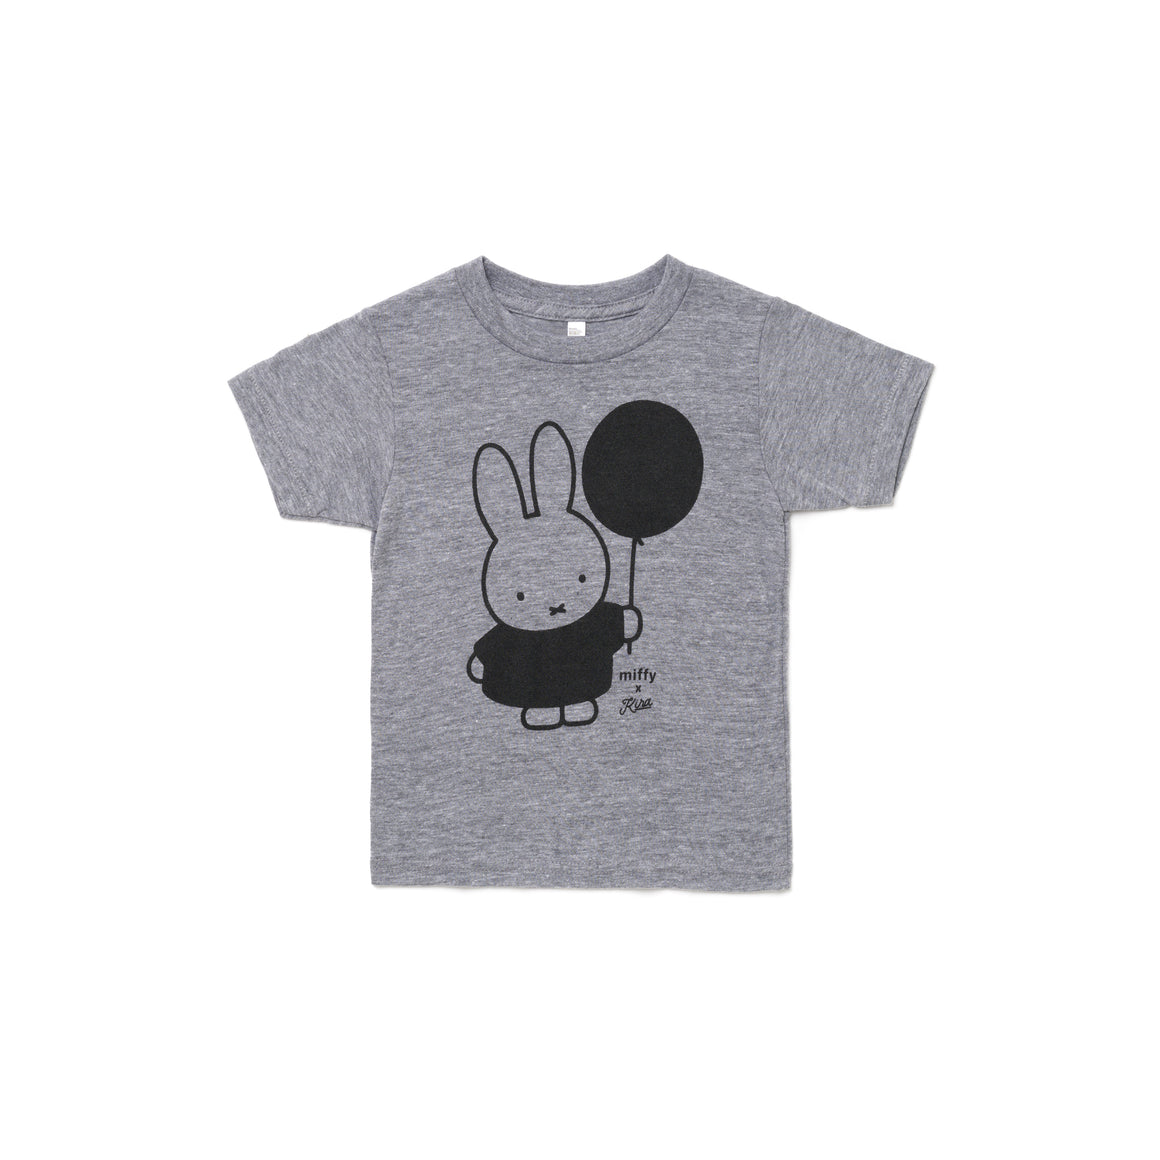 Miffy x Kira Balloon T-shirt, Heather Grey